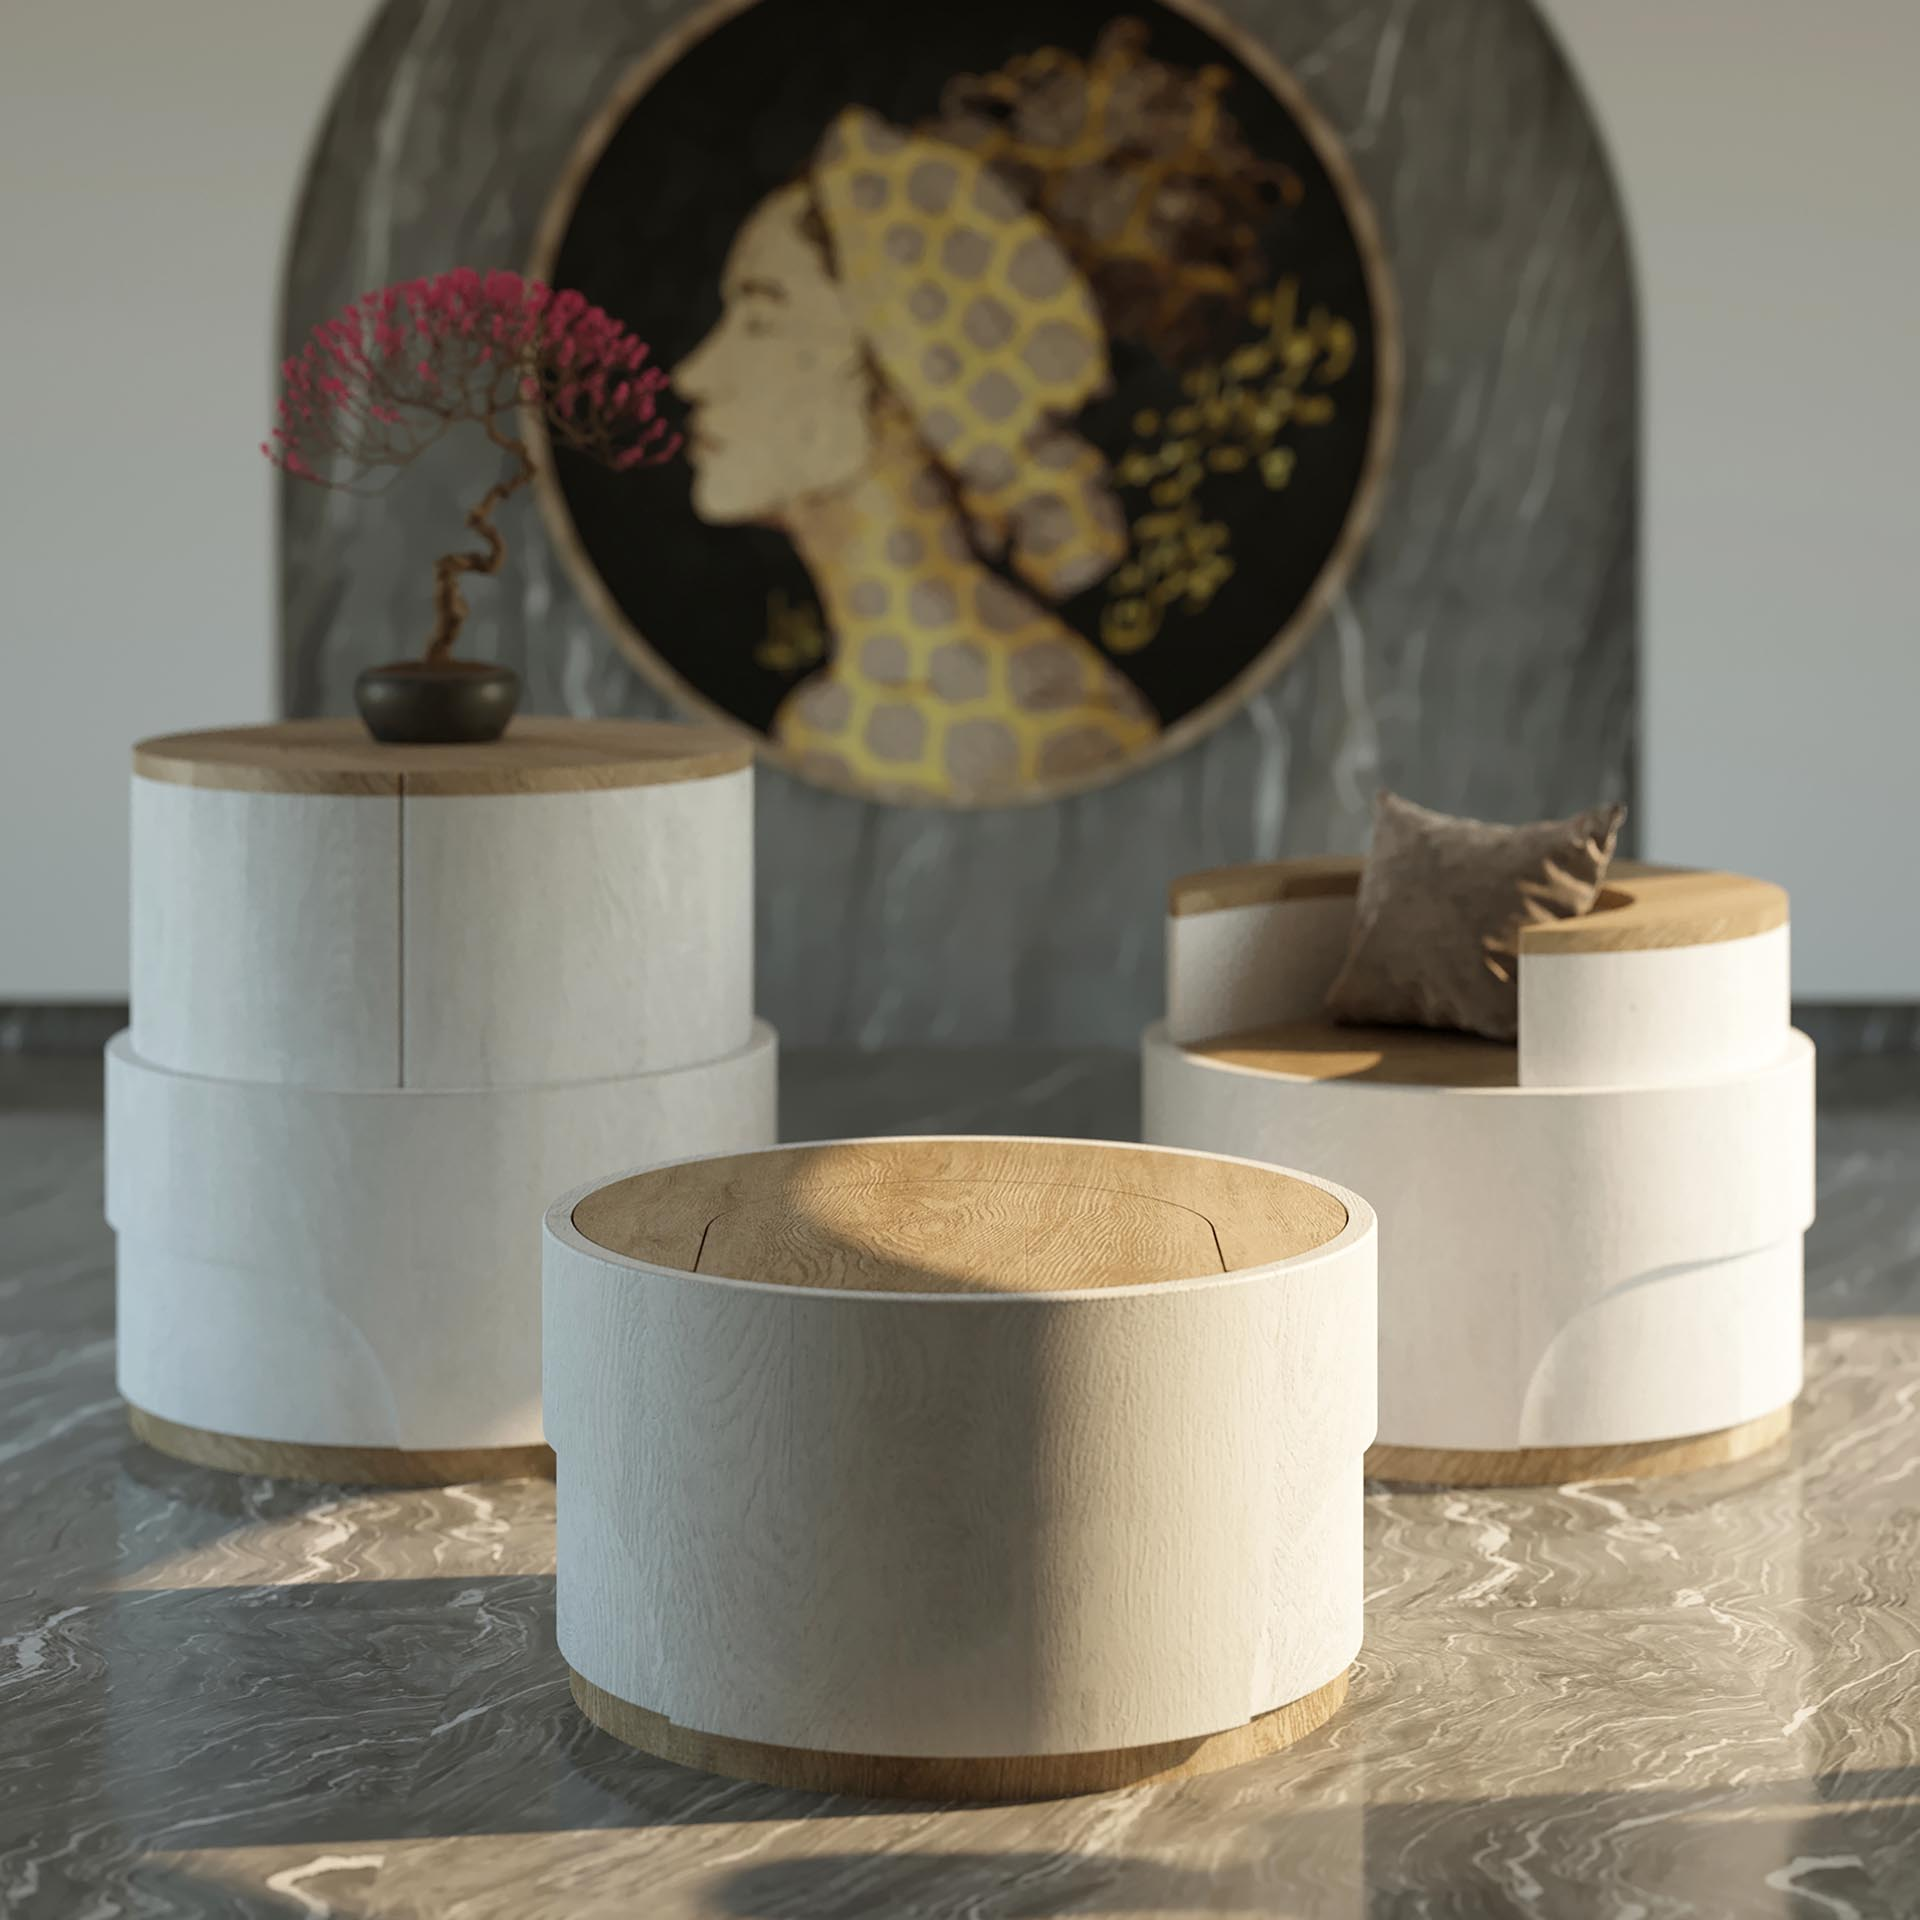 Modern multi-functional furniture that can be used as a footrest, chair, or table.